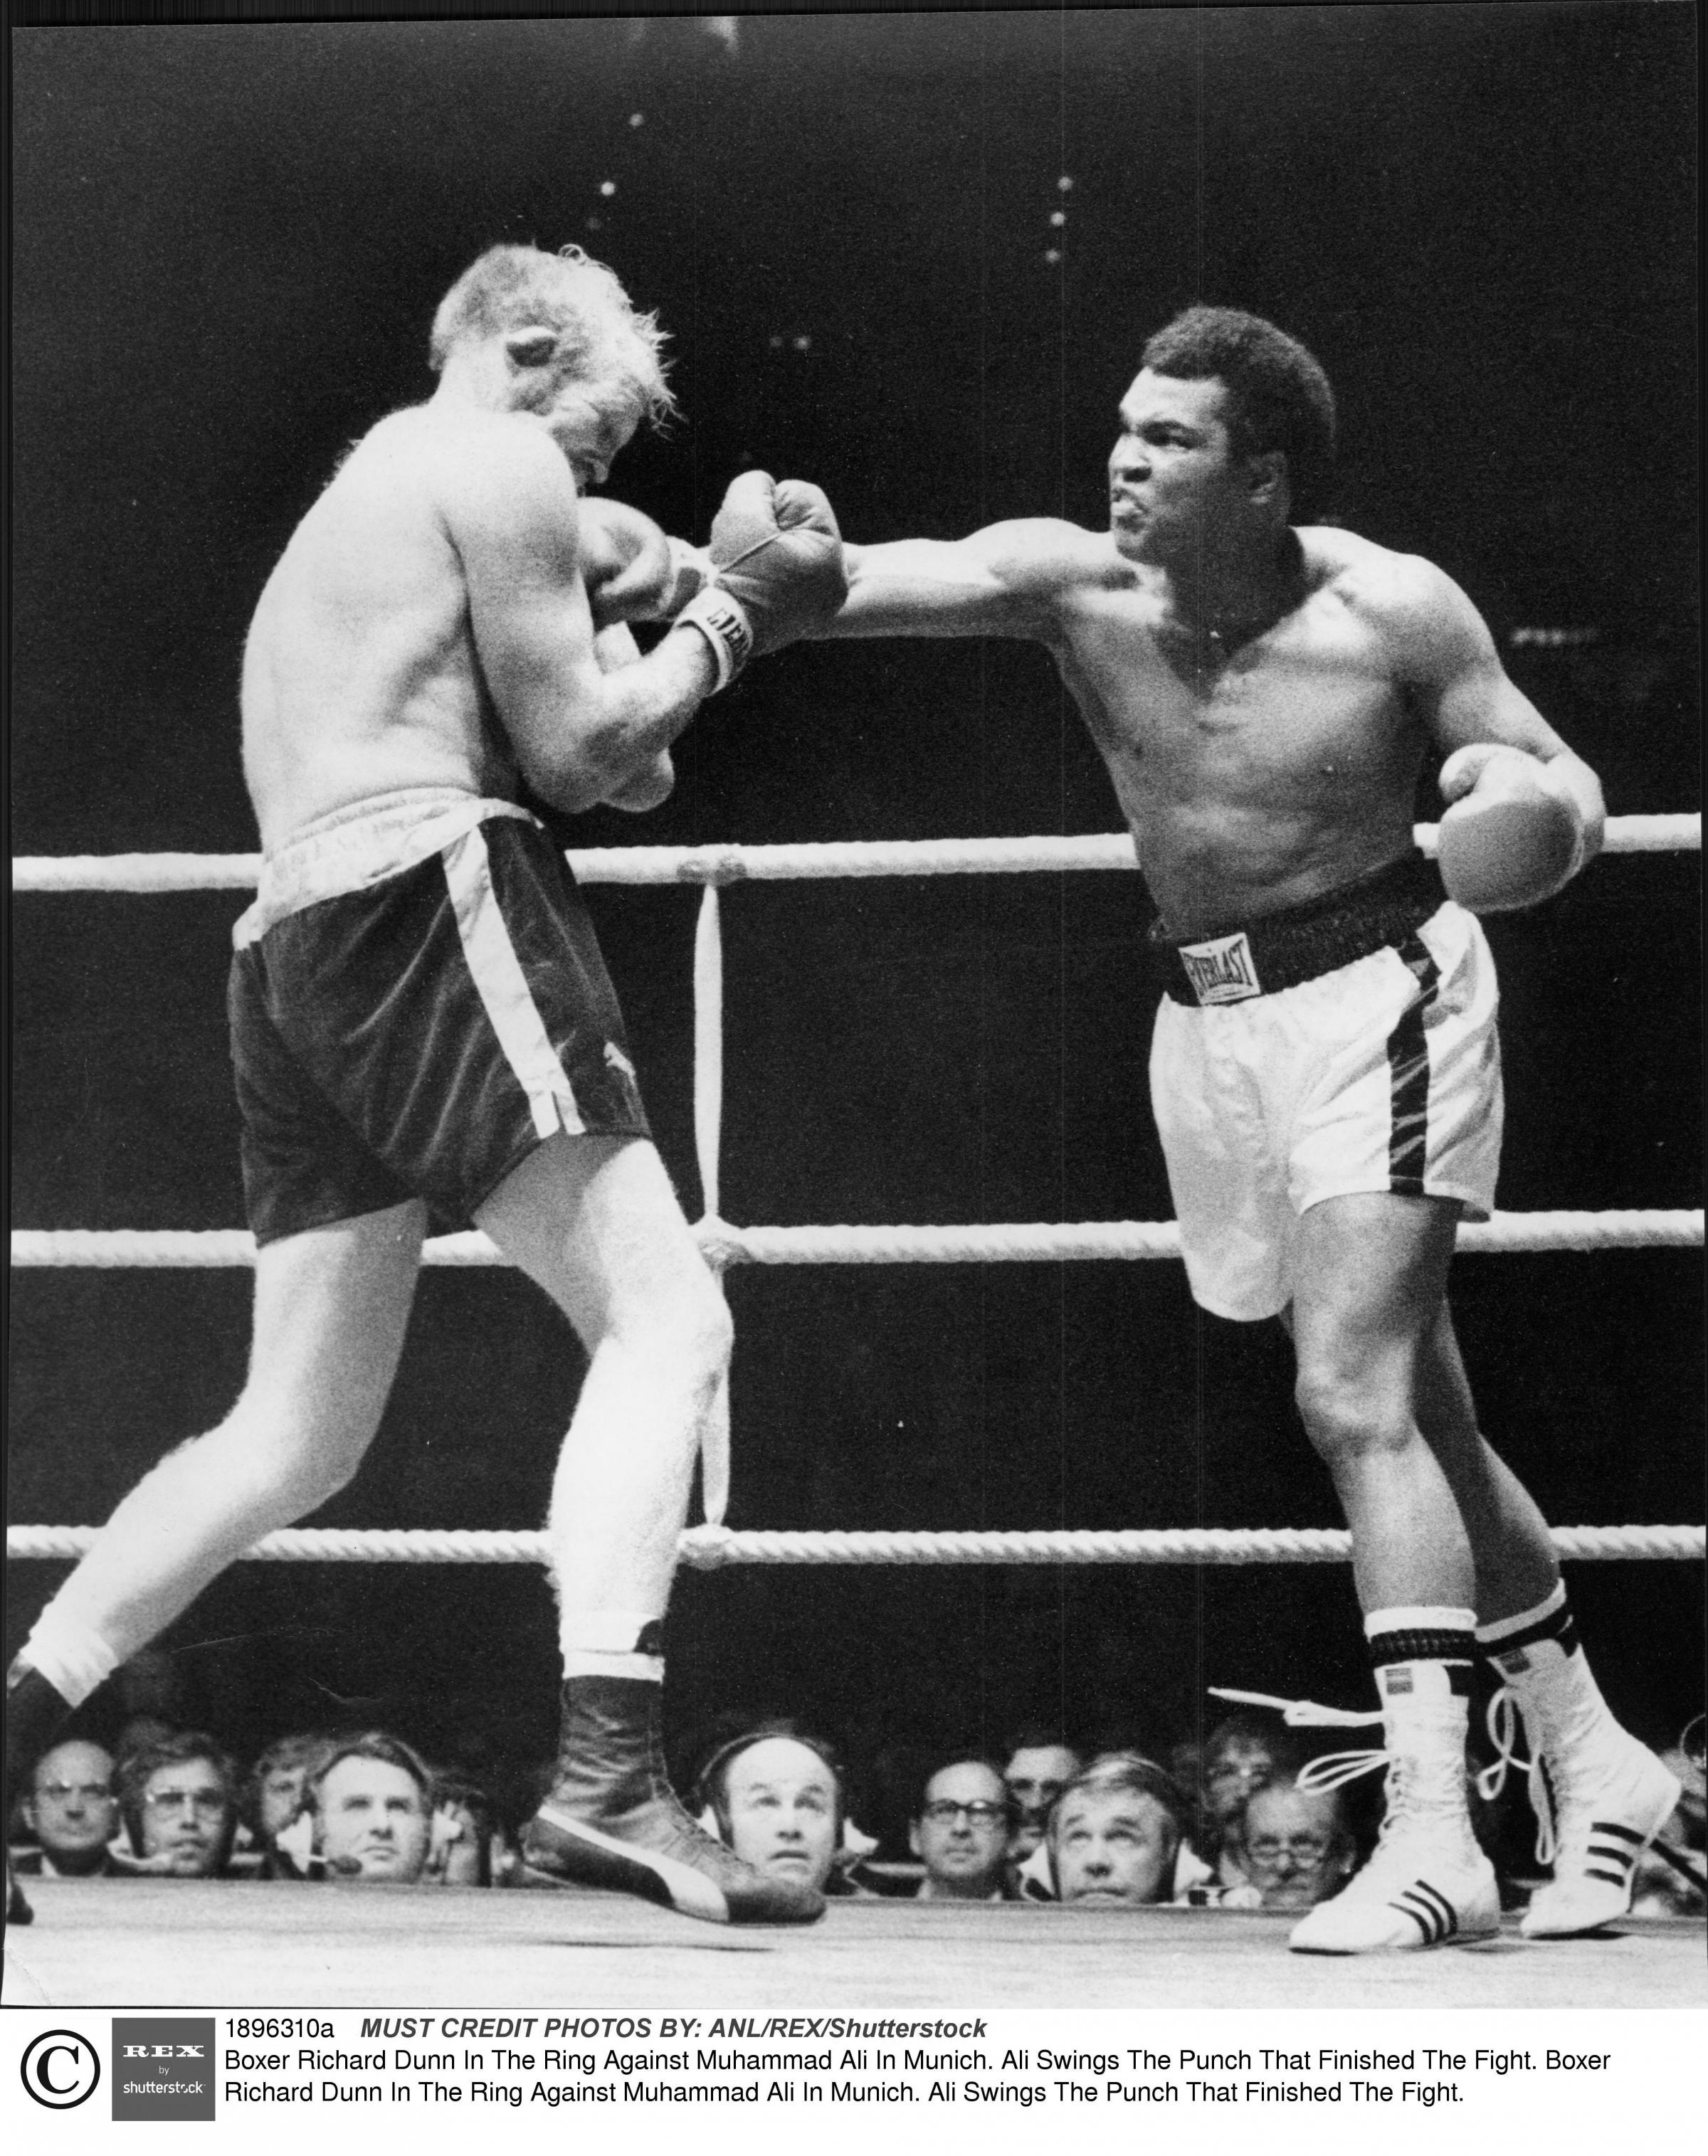 Mandatory Credit: Photo by Jim Hutchison/ANL/REX/Shutterstock (1896310a) Boxer Richard Dunn In The Ring Against Muhammad Ali In Munich. Ali Swings The Punch That Finished The Fight. Boxer Richard Dunn In The Ring Against Muhammad Ali In Munich. Ali Swings